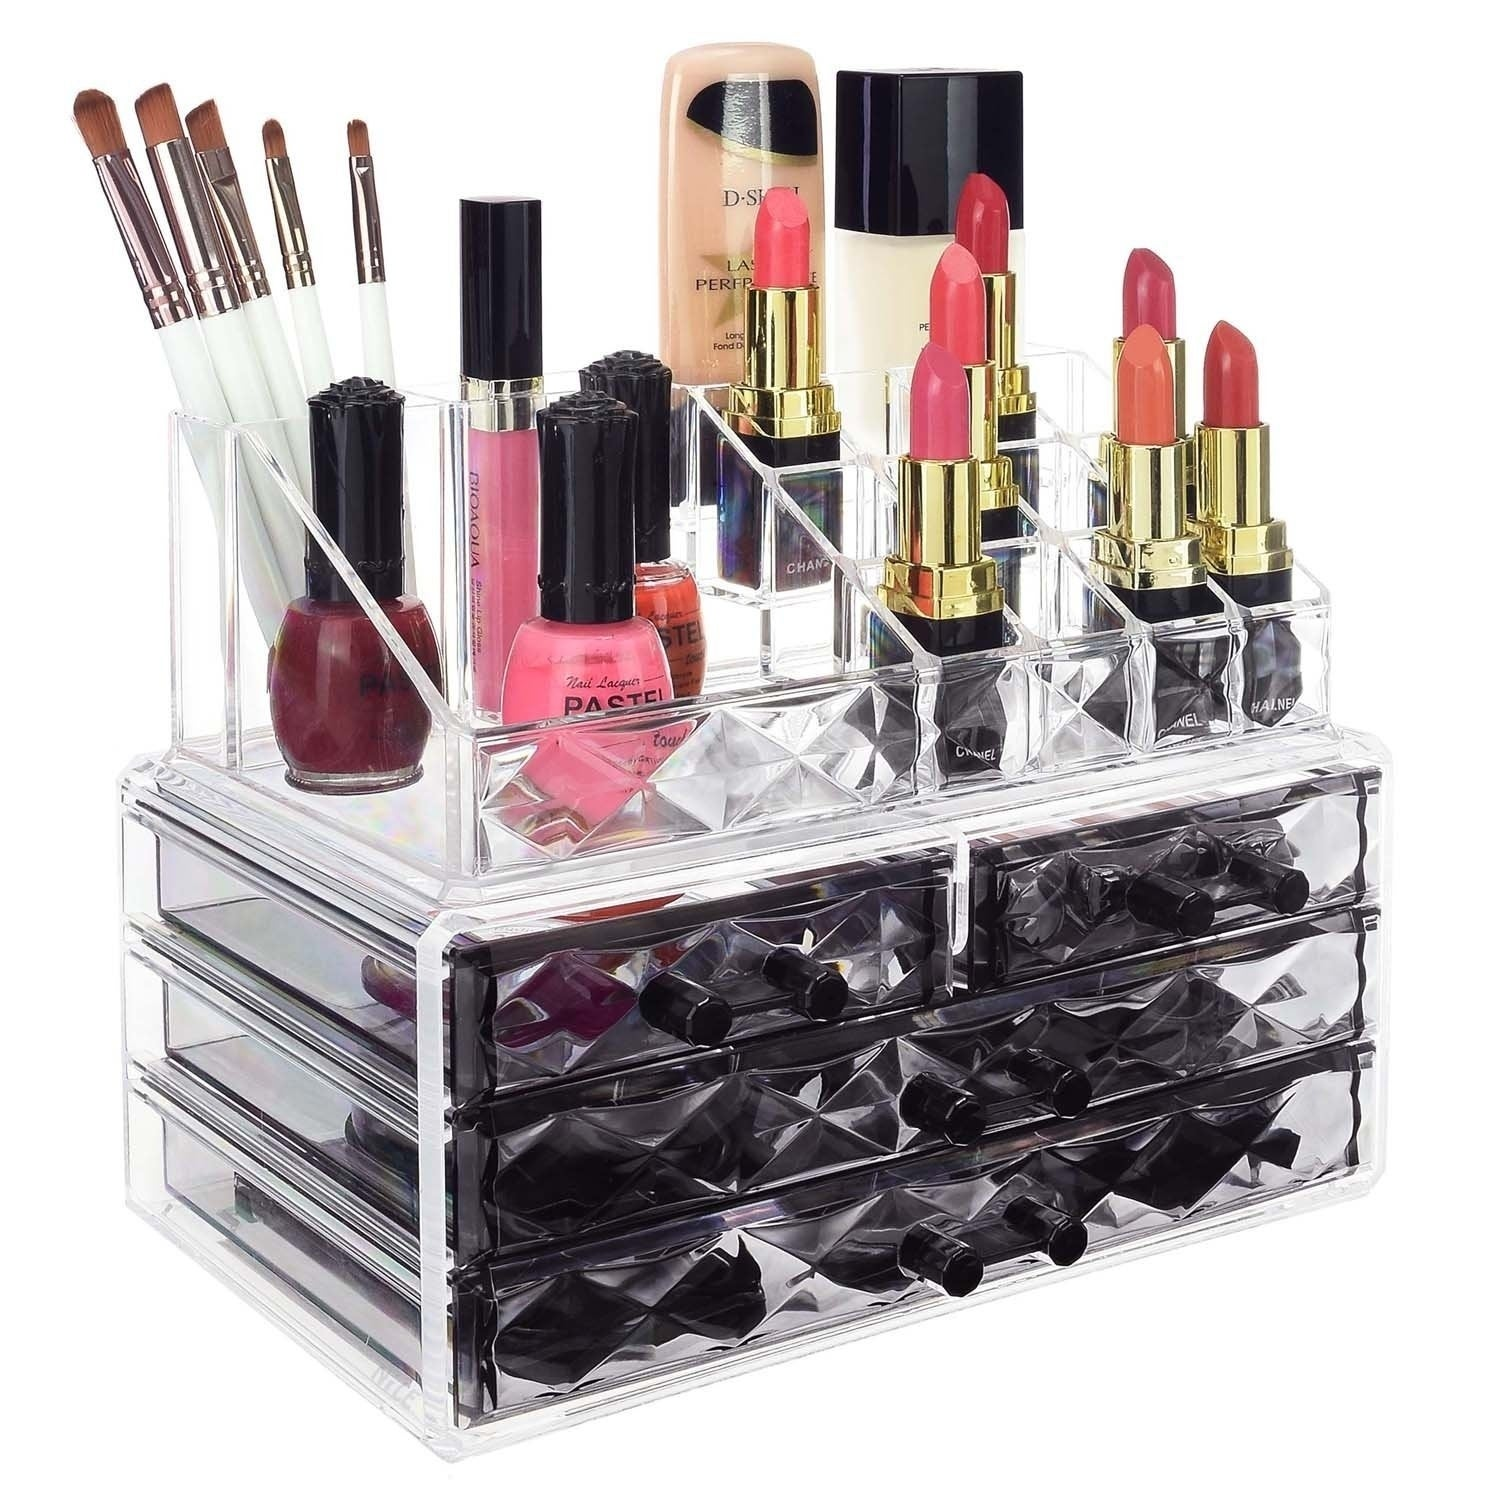 Ikee Design Jewelry And Makeup Organizer Two Pieces Set, Black